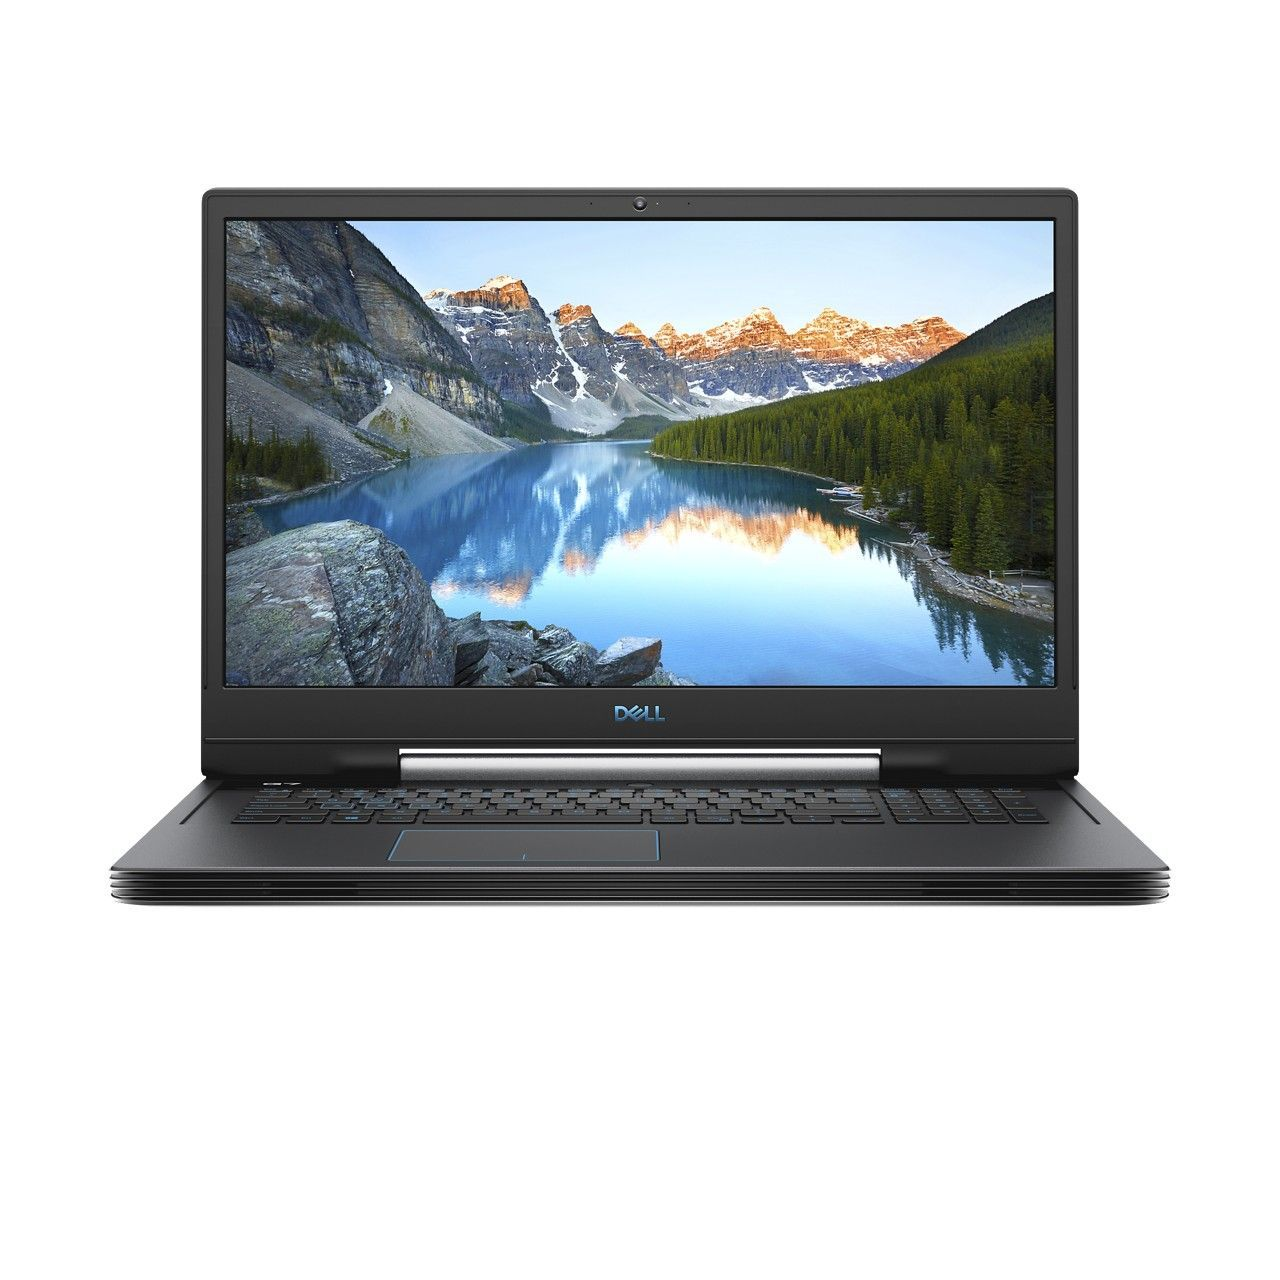 "Dell G7-E1296 Gaming Laptop i7-9750H/16 GB/256 GB SSD/NVIDIA GeForce RTX 2060 6 GB/17.3"" FHD/144Hz Refresh Rate/Windows 10/Grey"